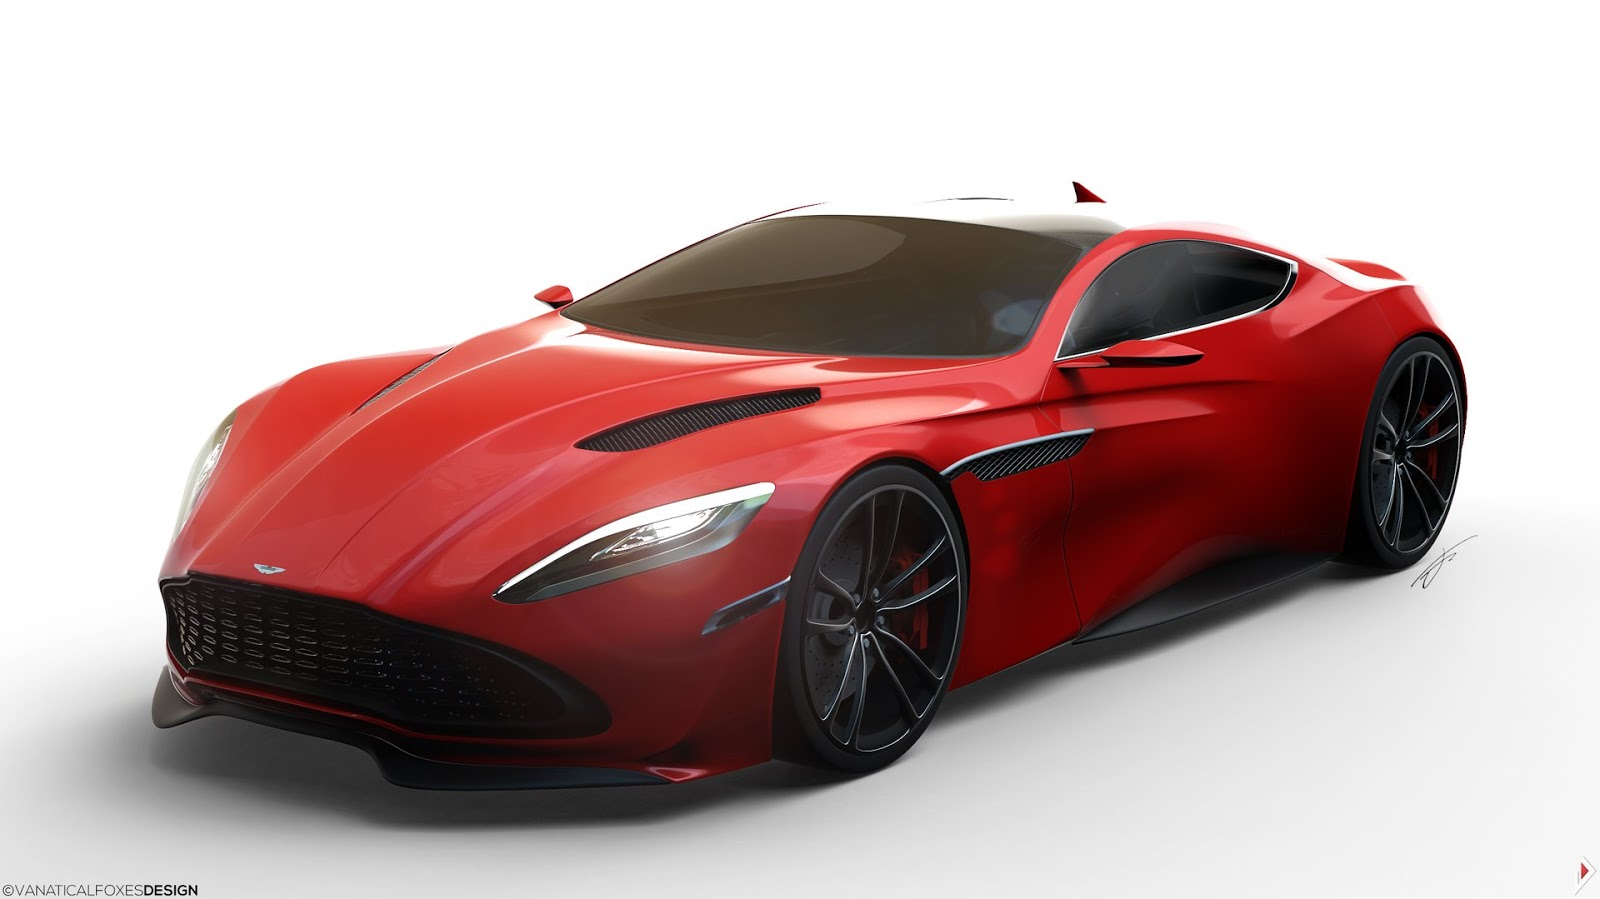 Aston Martin Db11 Imagined In Jaw Dropping Renderings